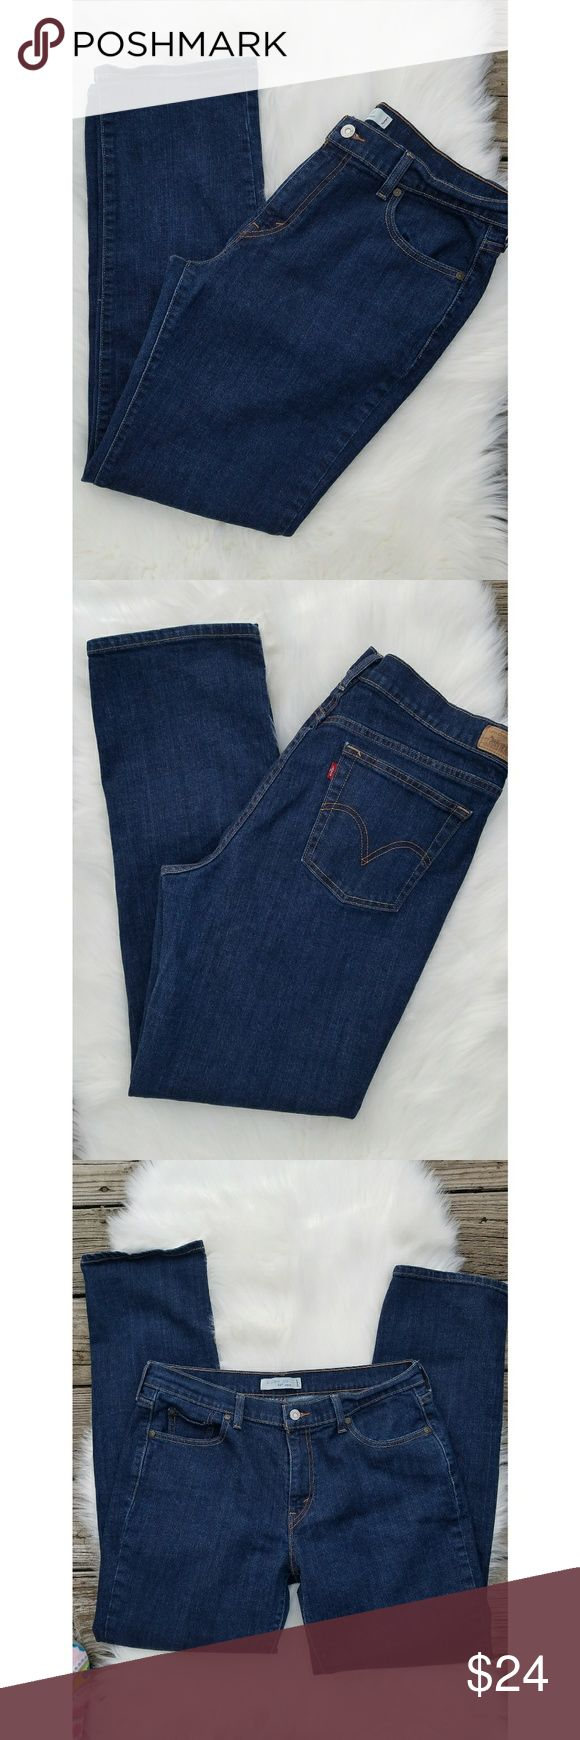 Levis 505 Straight Leg Jeans Levis 505 Jeans Straight Leg  Dark Wash  Size 14 New Without Tags Levi's Jeans Straight Leg